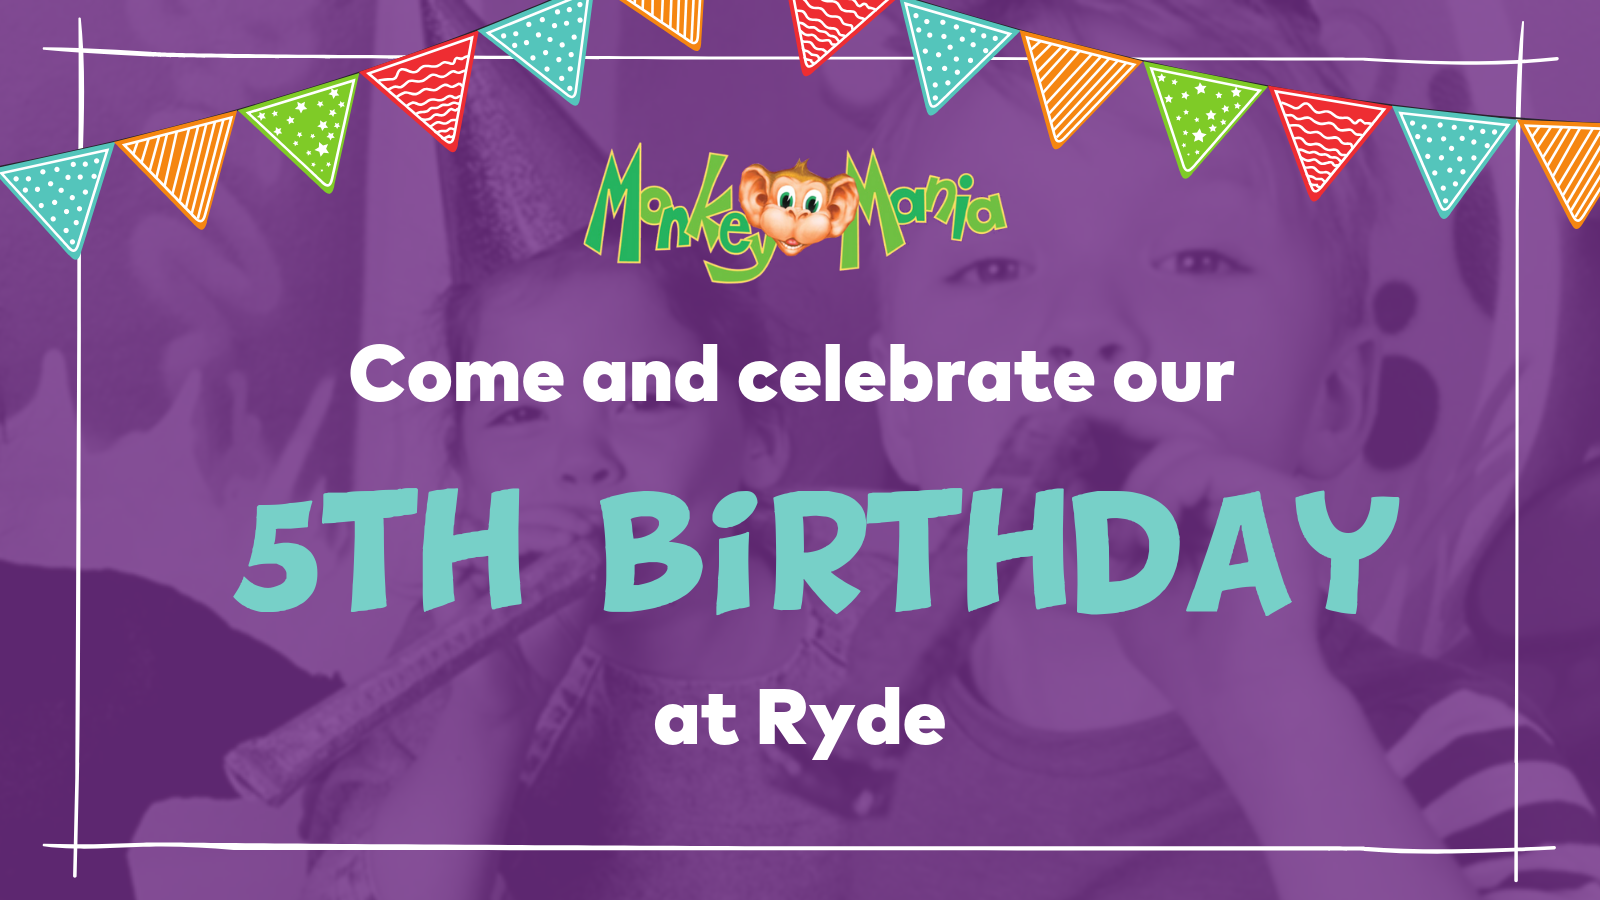 Top Ryde is turning 5